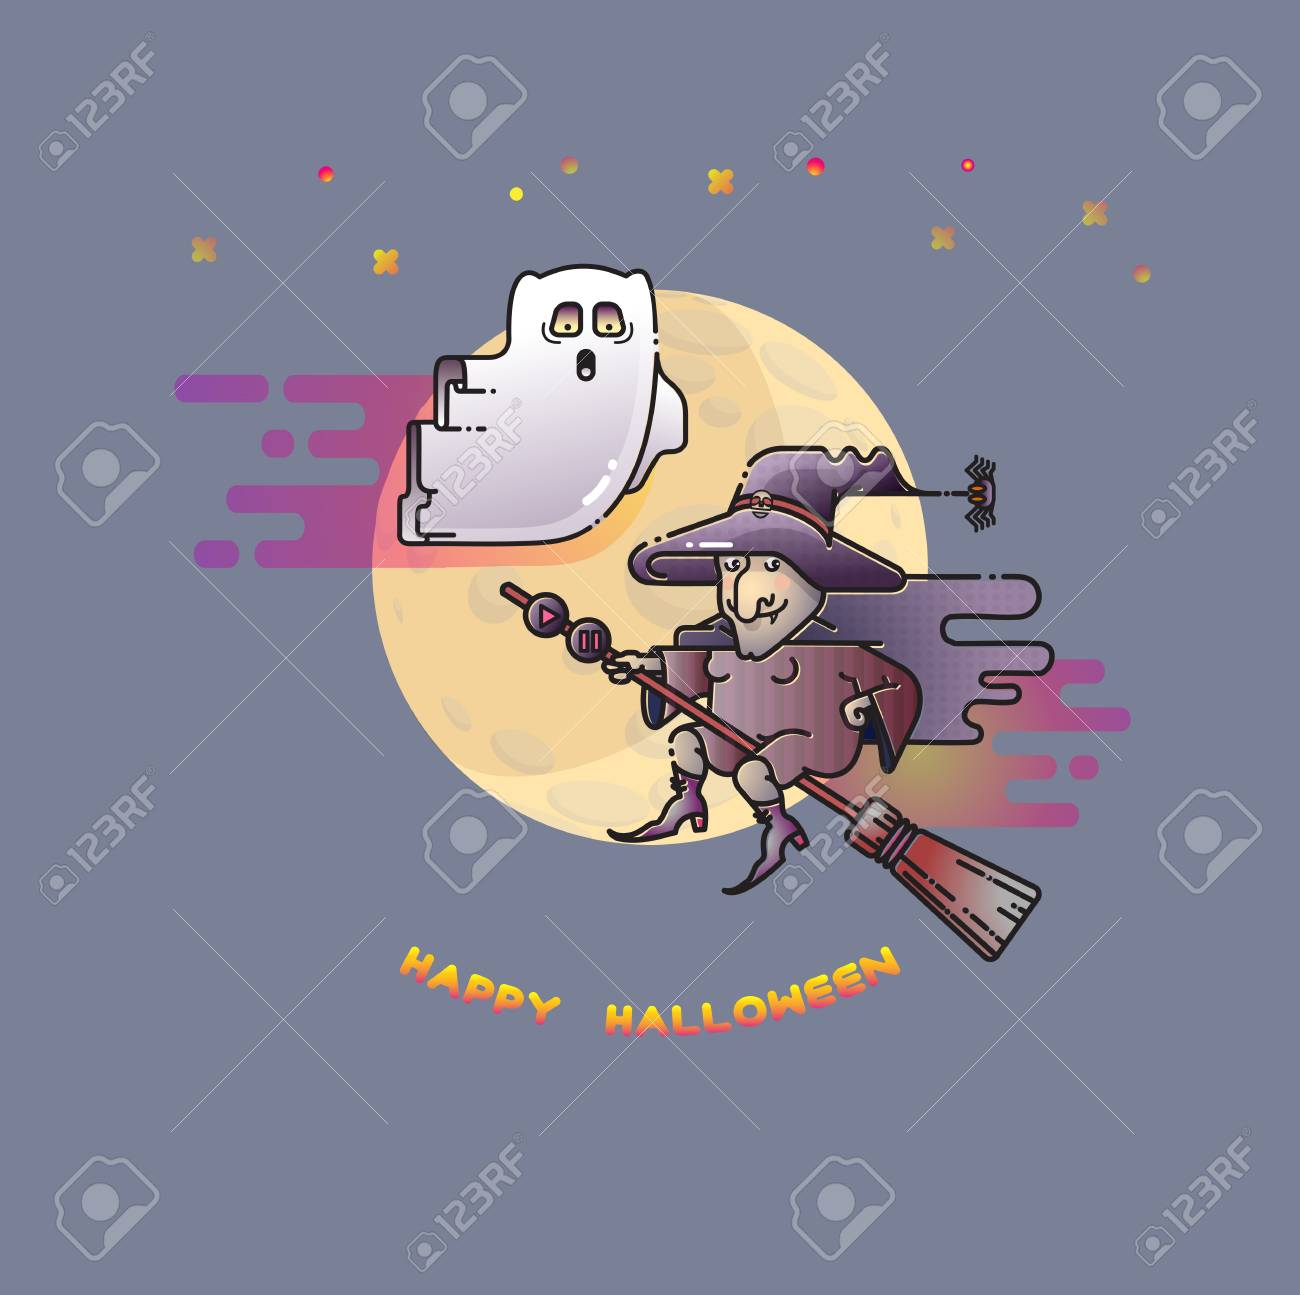 Happy Halloween Card With Funny Ghost, Witch And Moon. Stock Vector    87349912